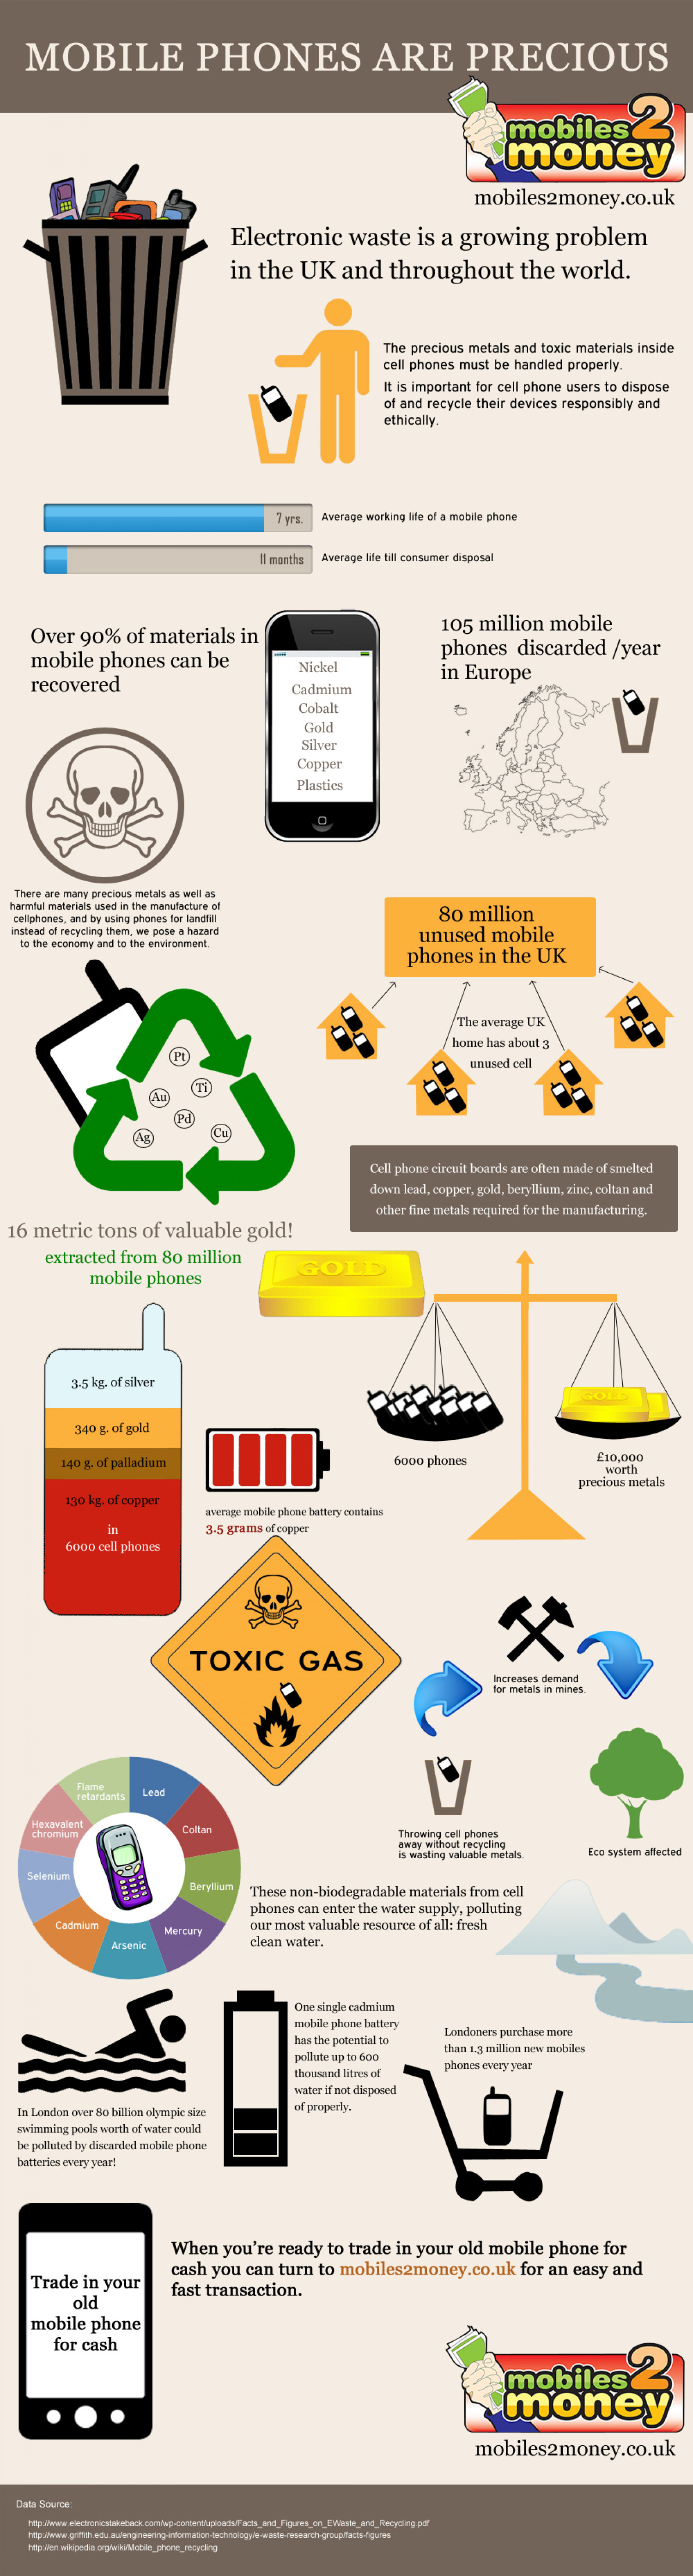 Mobile Phone Recycling Facts Infographic